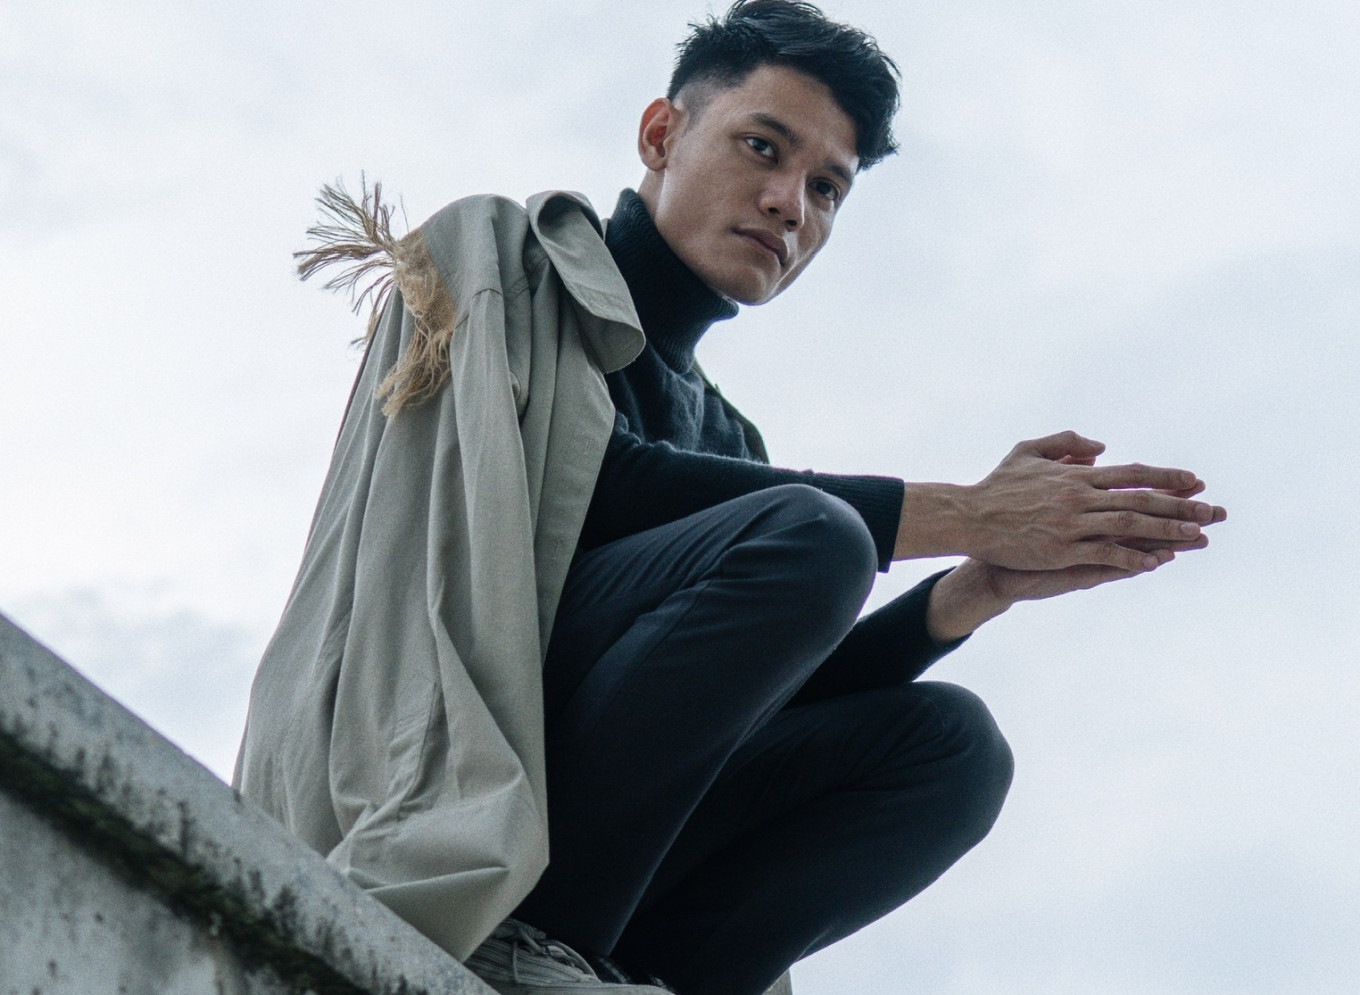 Alextbh on his new music and Malaysia's LGBT community